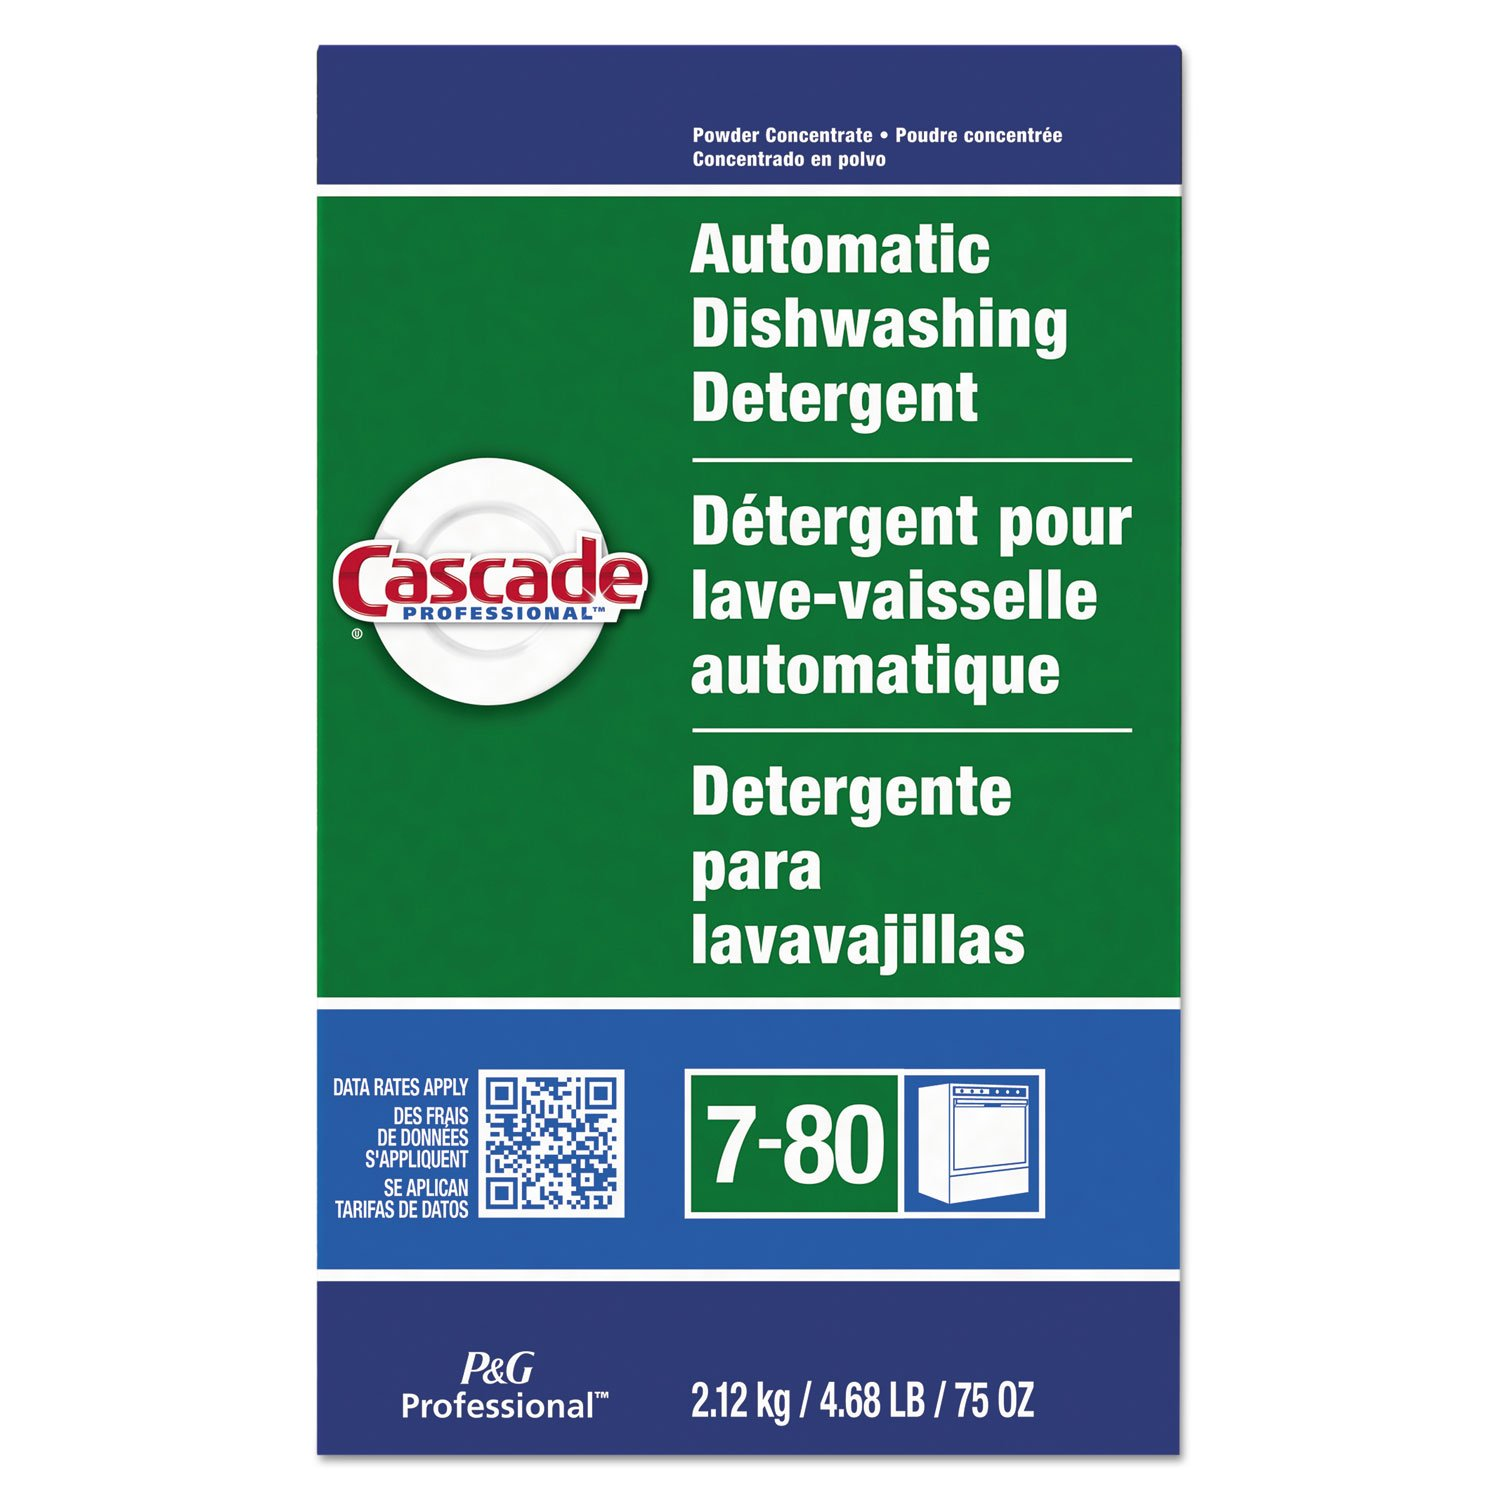 Bulk Dishwasher Detergent Powder by Cascade Professional, for use in Automatic Dishwashers within Commercial Kitchens, Fresh Scent, 75 oz. (Case of 7)